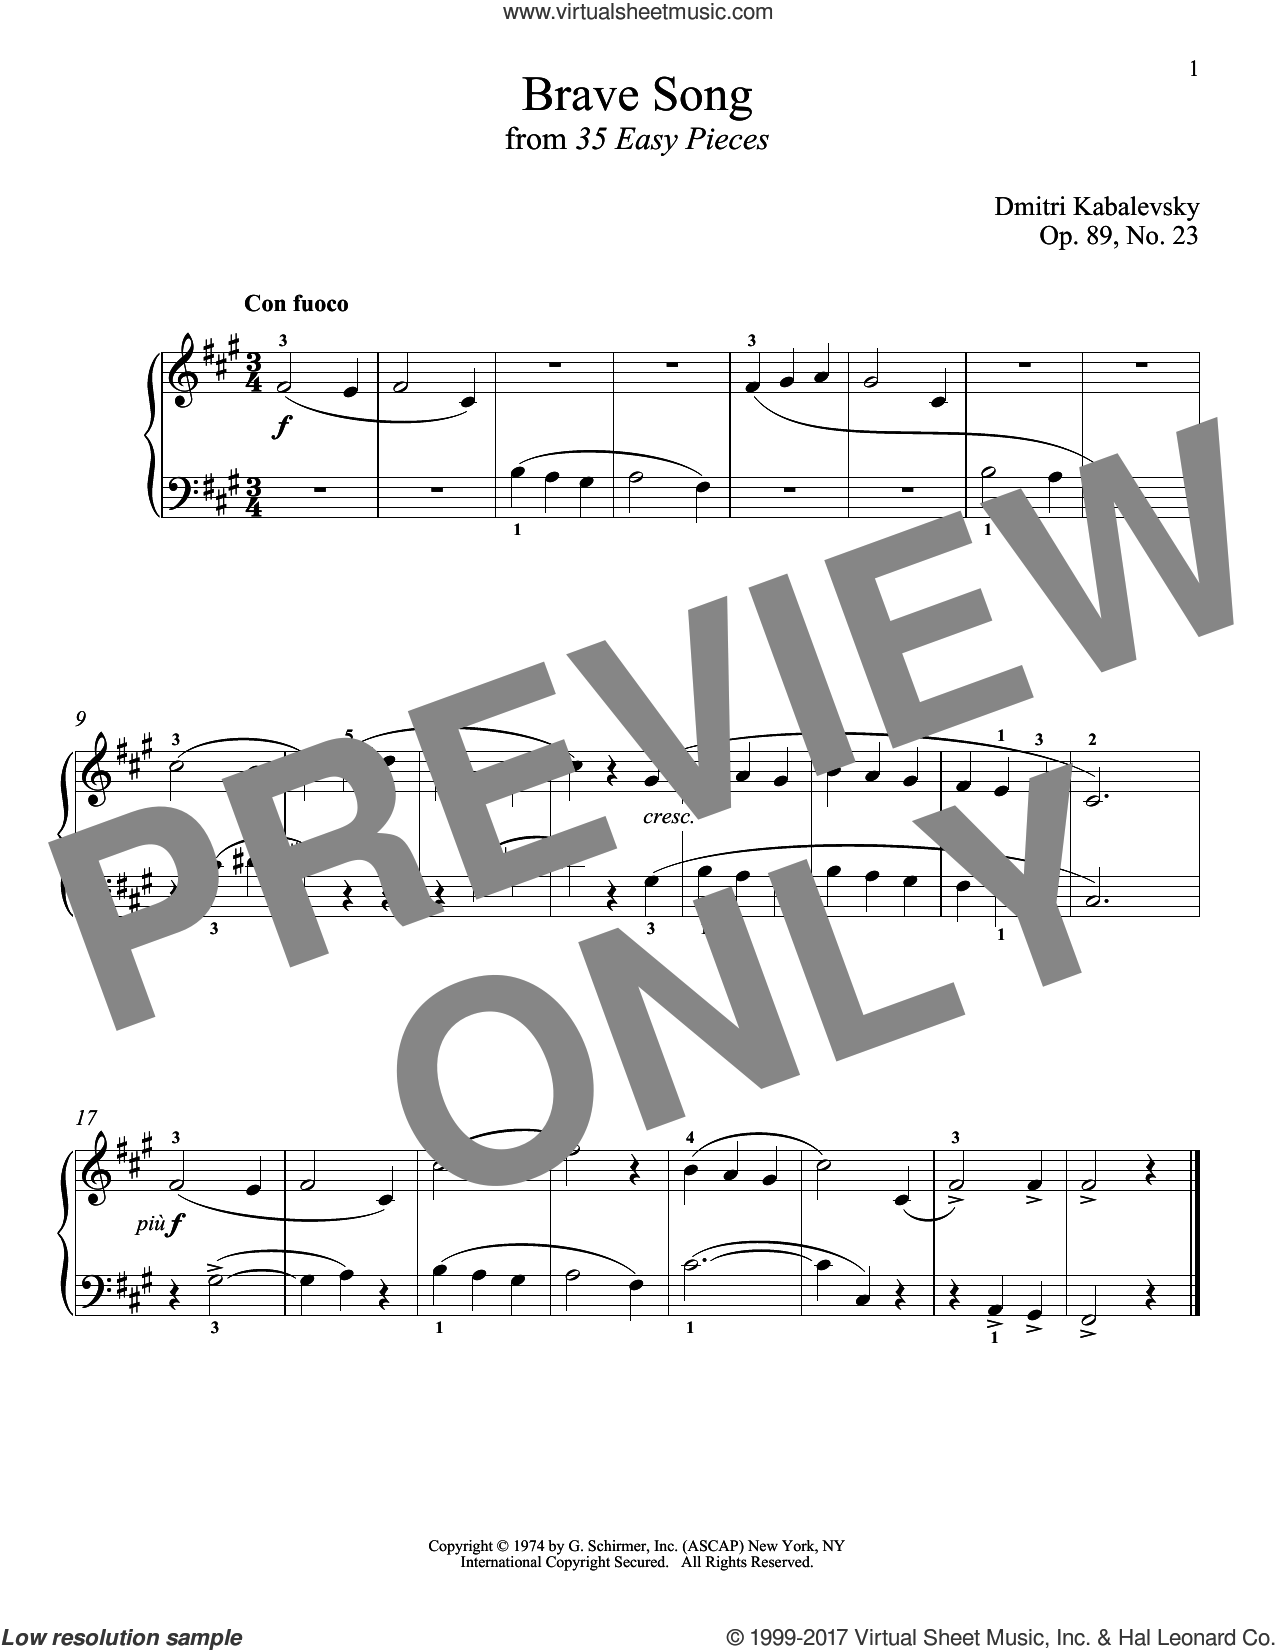 Brave Song sheet music for piano solo by Dmitri Kabalevsky. Score Image Preview.